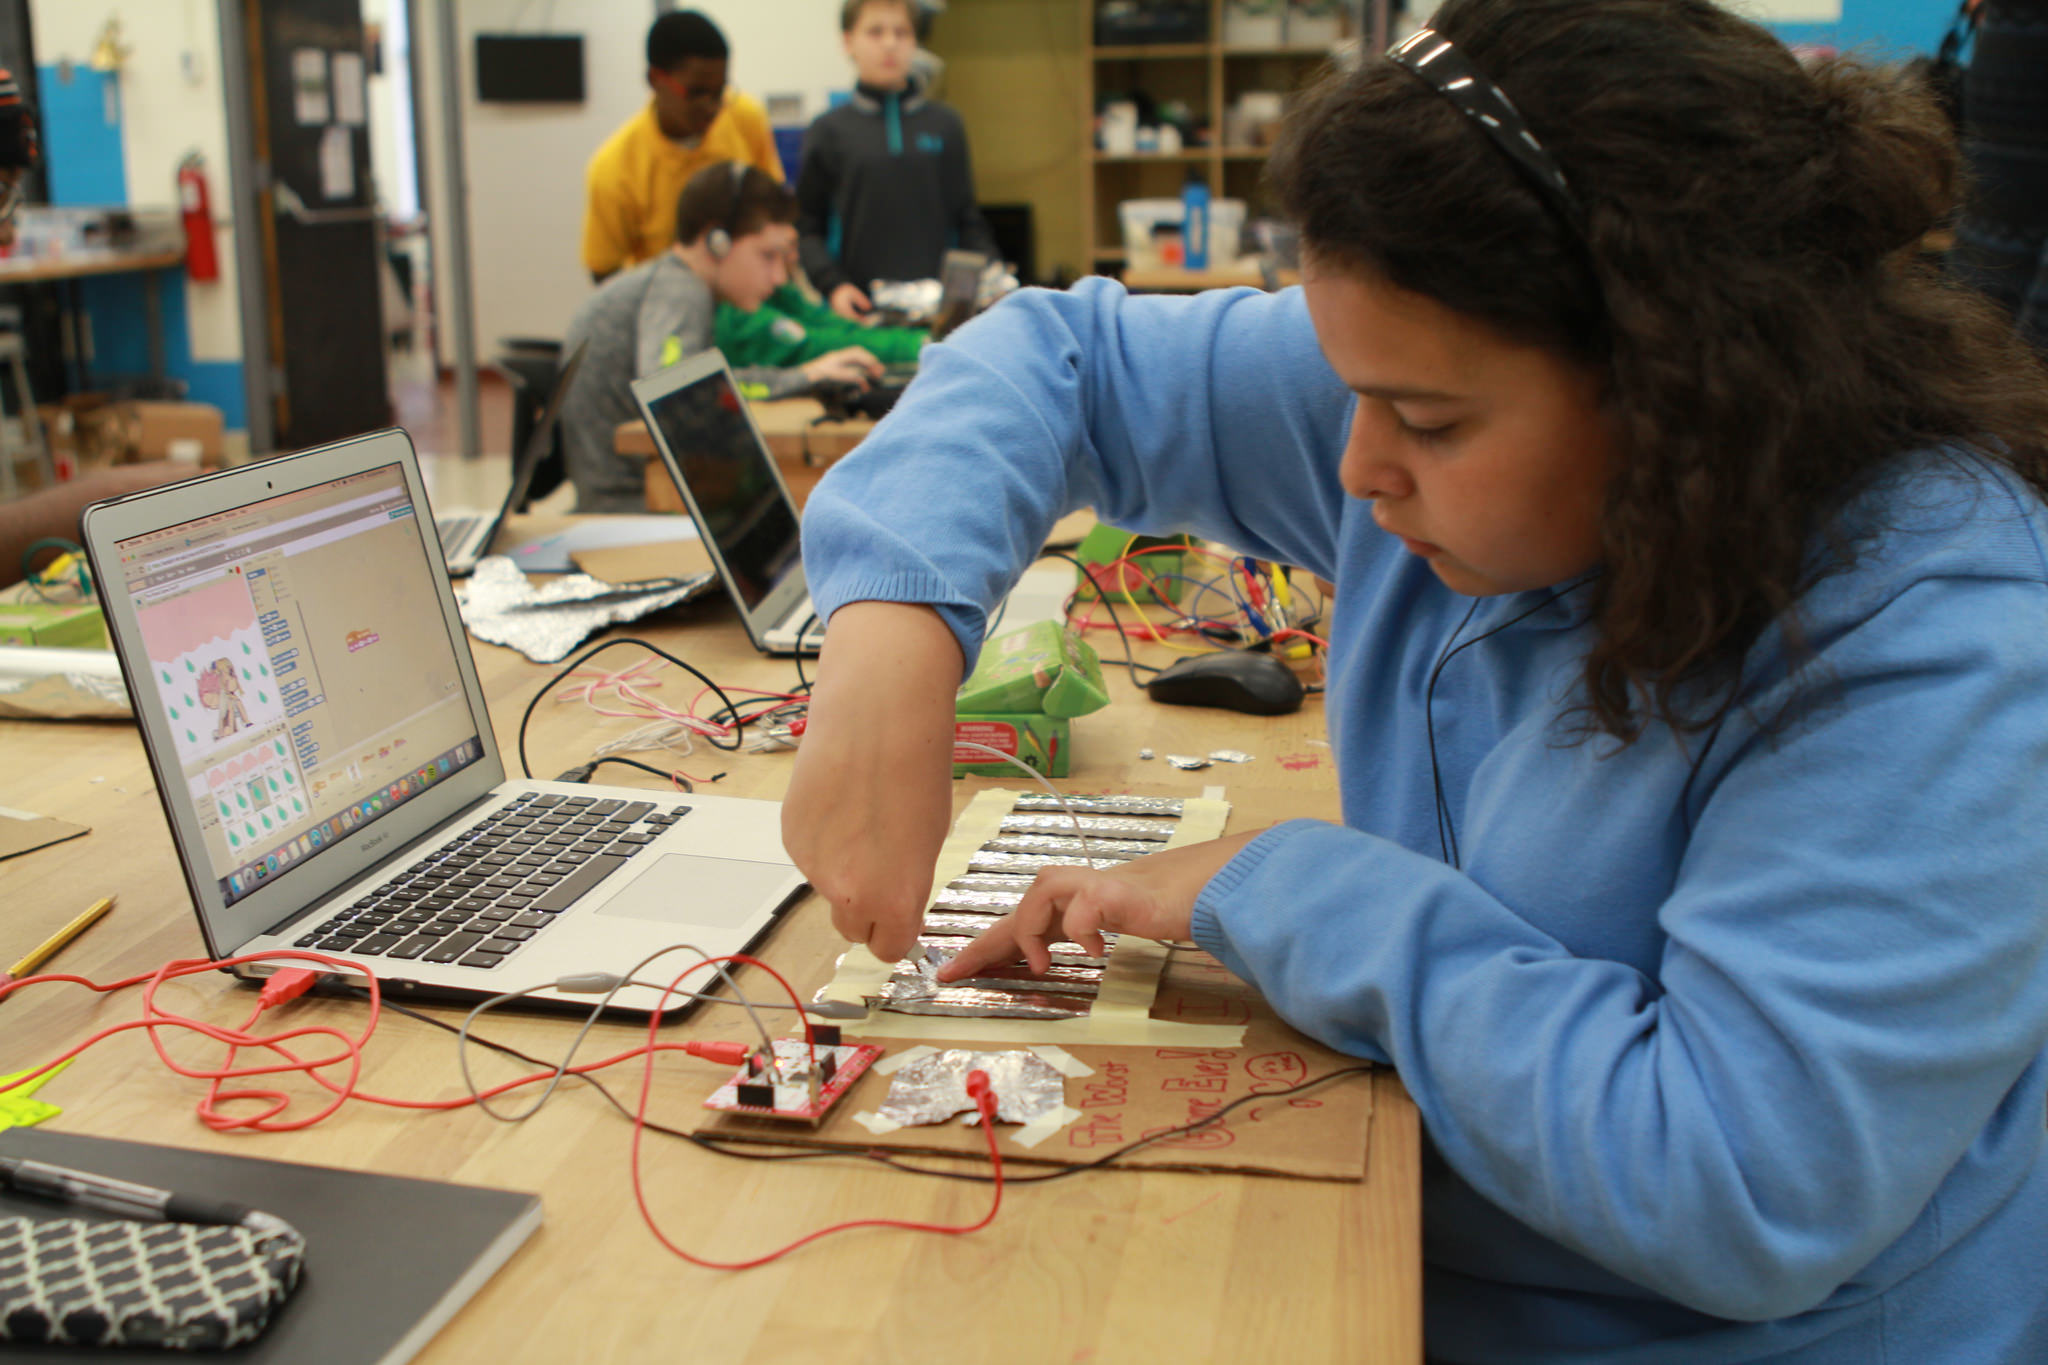 youth working with a makey makey